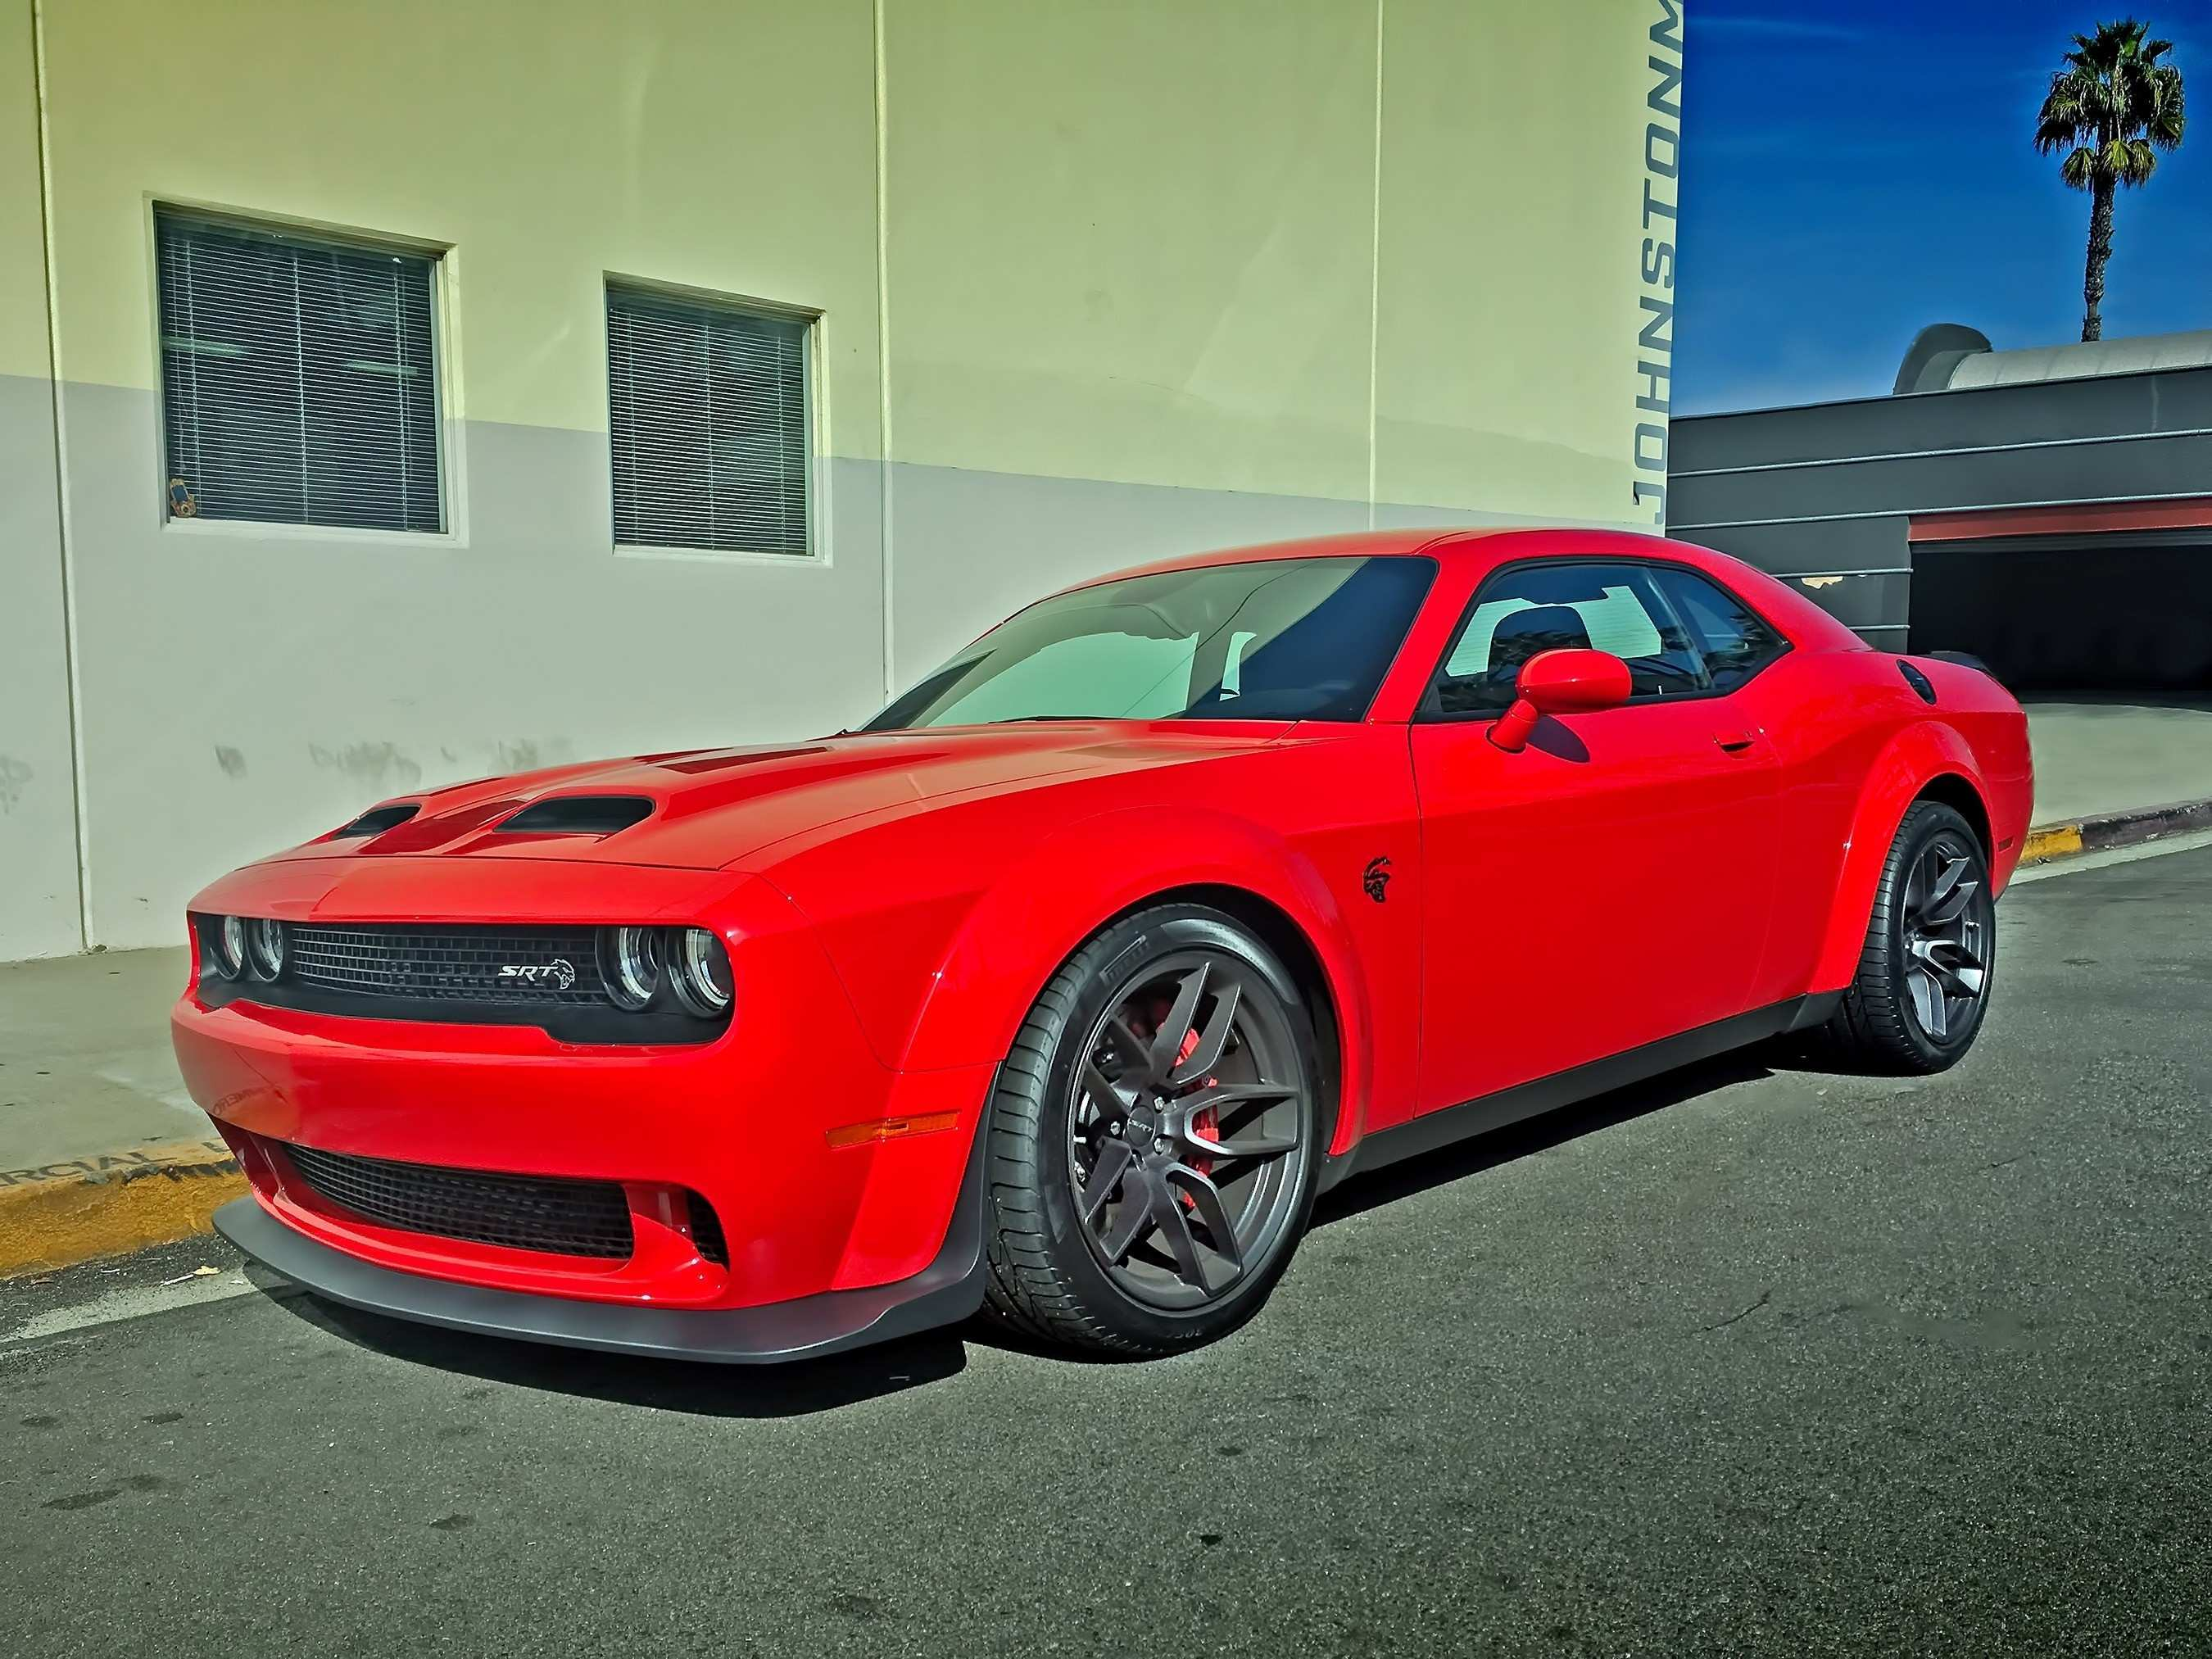 66 All New New Dodge New 2019 Release Date Price And Review Engine with New Dodge New 2019 Release Date Price And Review